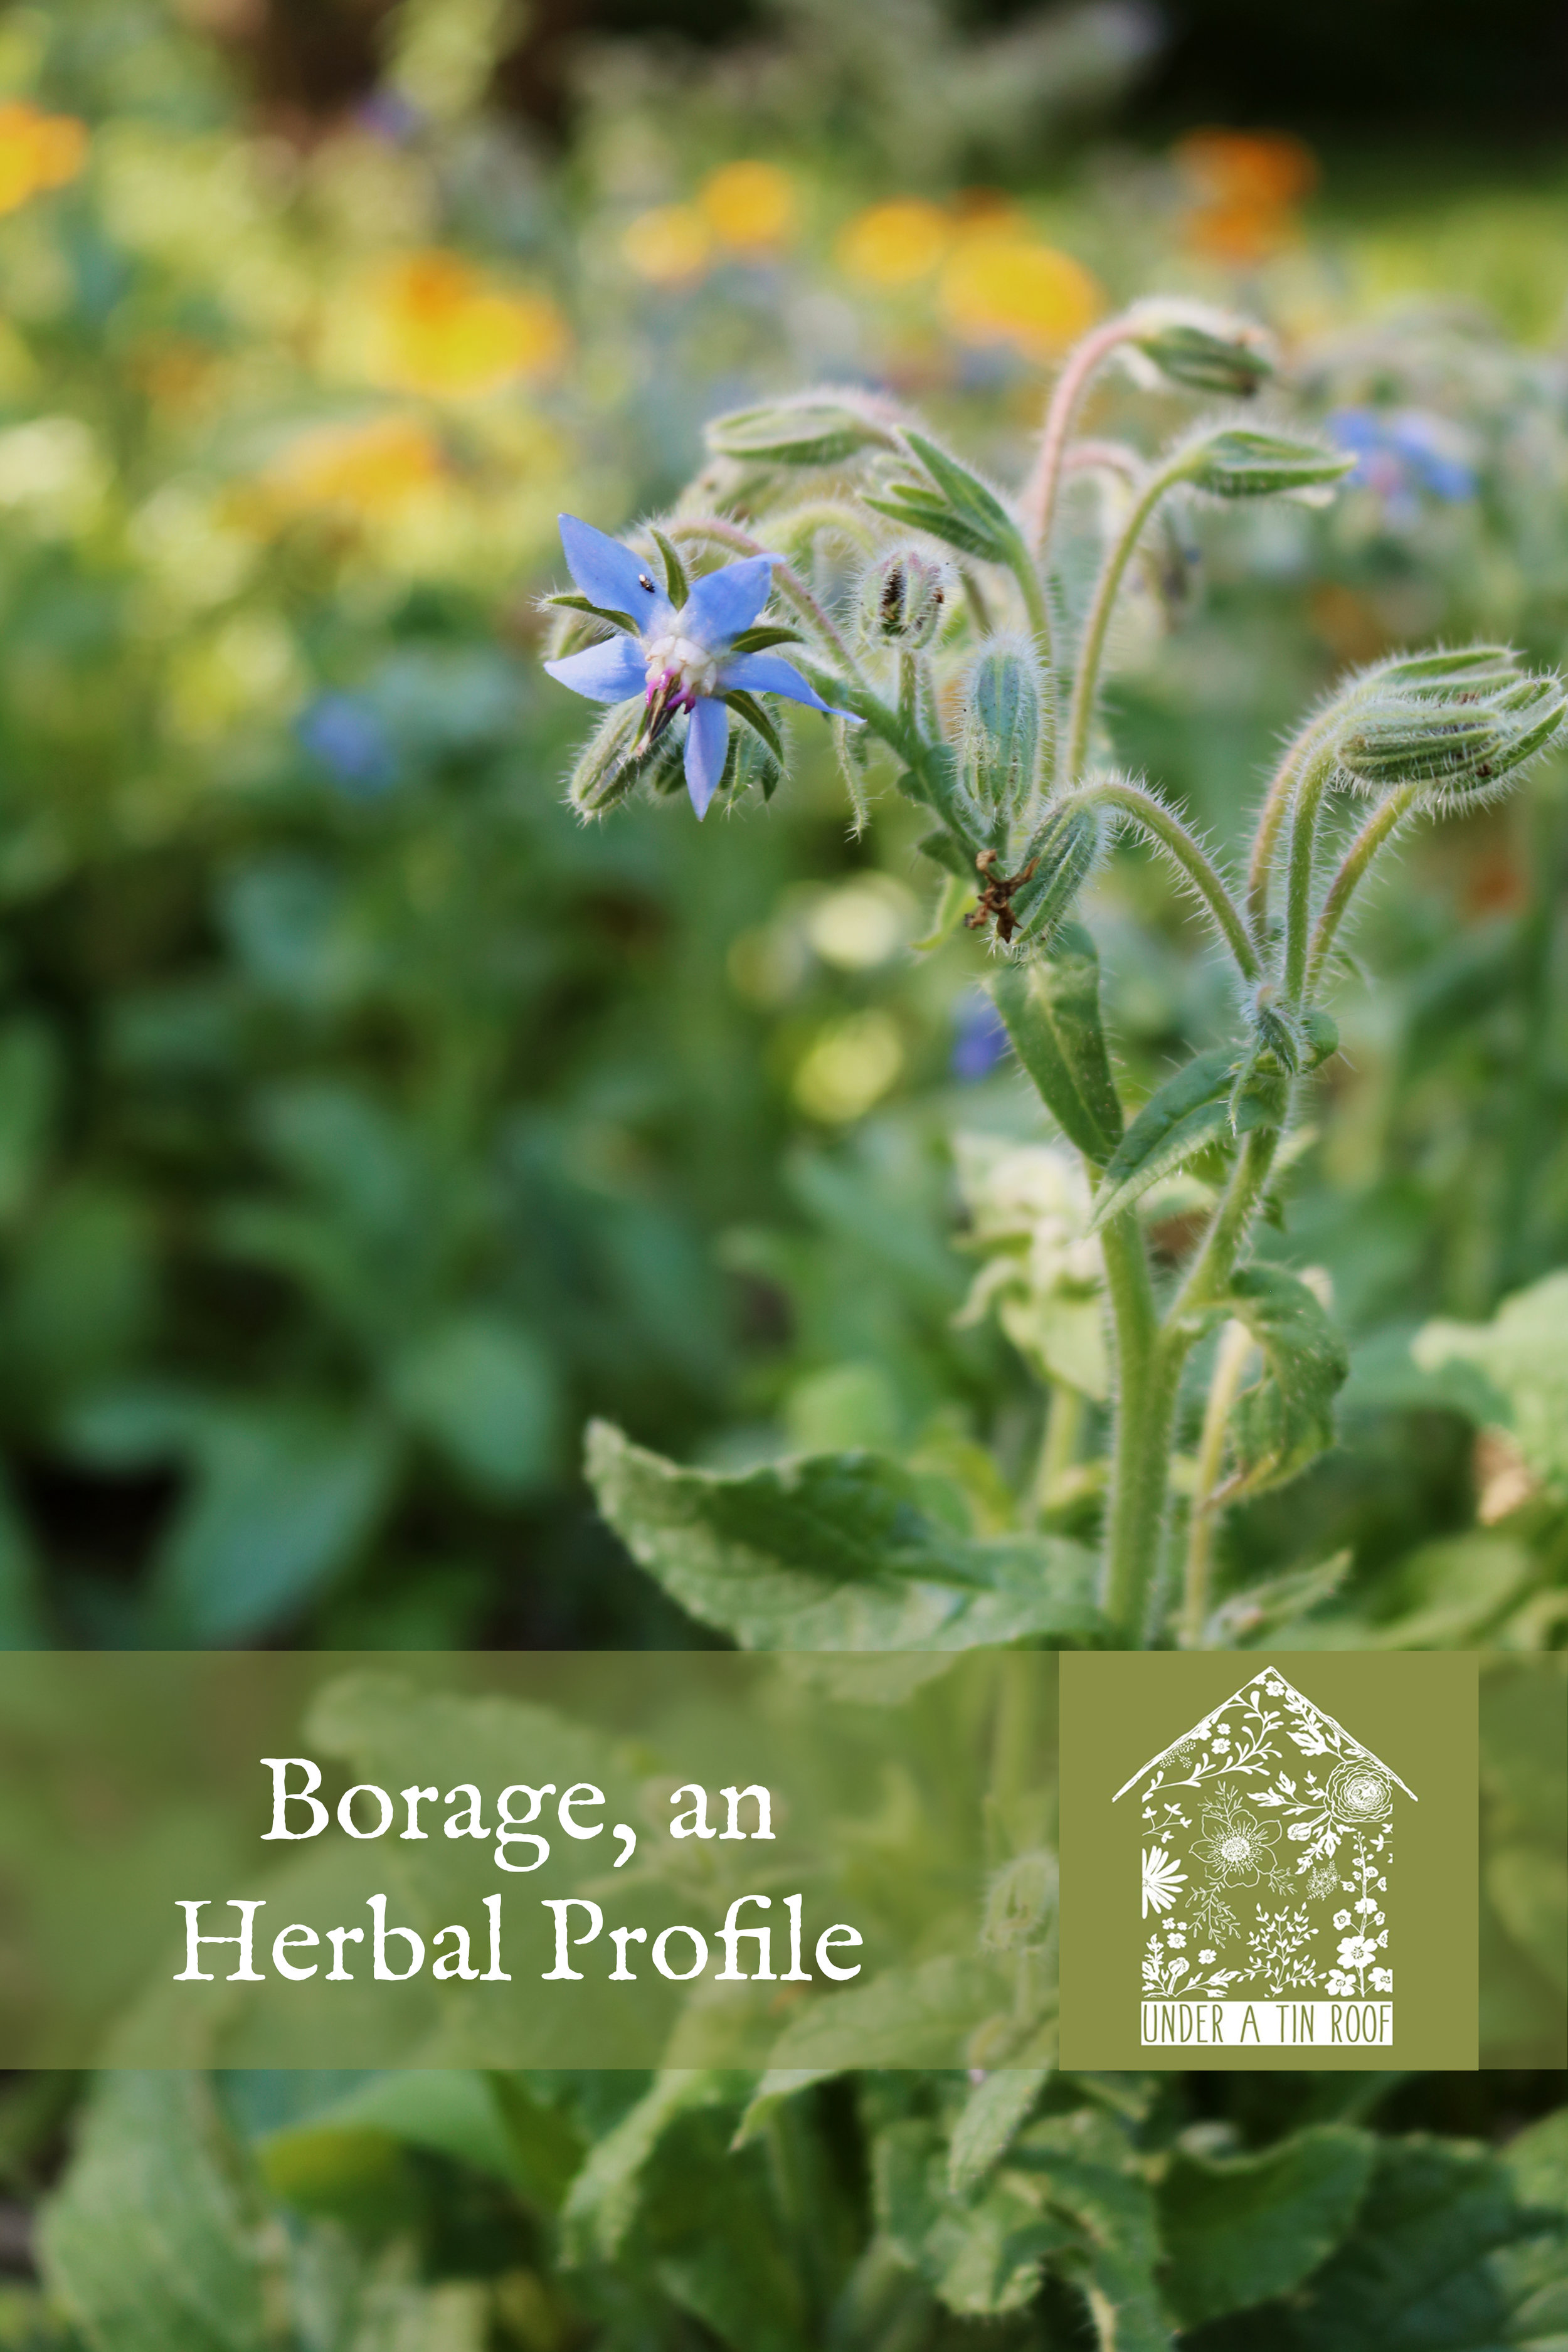 Borage, an Herbal Profile - Under A Tin Roof Blog